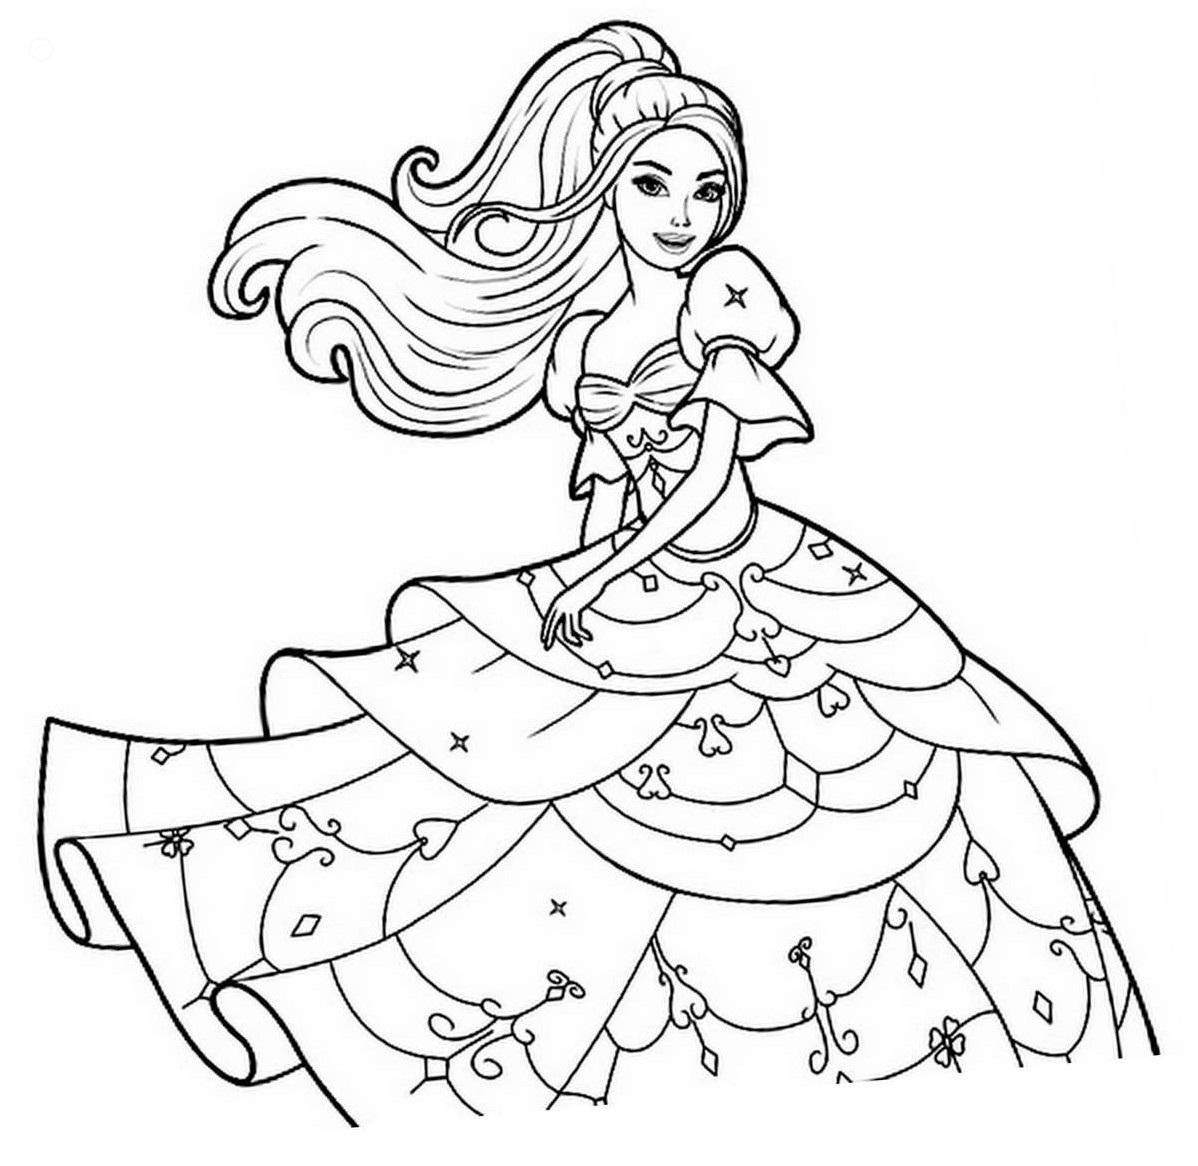 barbie painting pages barbie coloring pages to print at getdrawings free download painting pages barbie